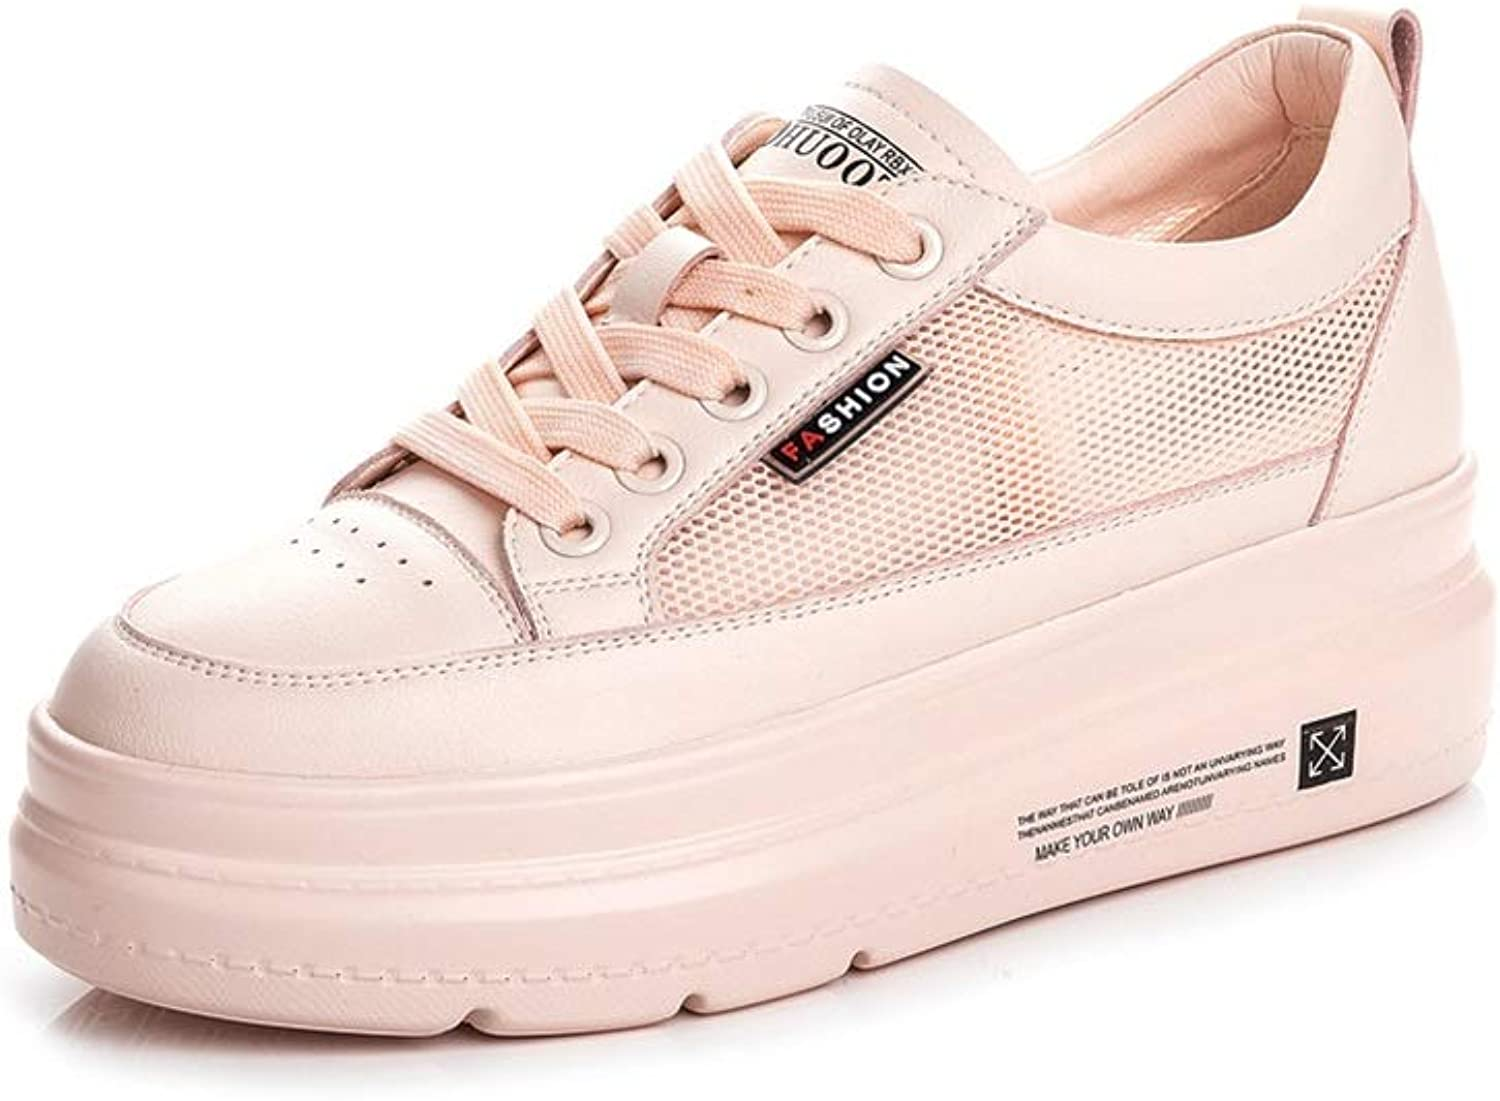 WANGFANG Sandals Increase The Small White shoes, Summer Breathable Mesh Surface Hollow Chunky Platform shoes for Women (color   Pink, Size   US6 EU37 UK4 MX3.5 CN37)